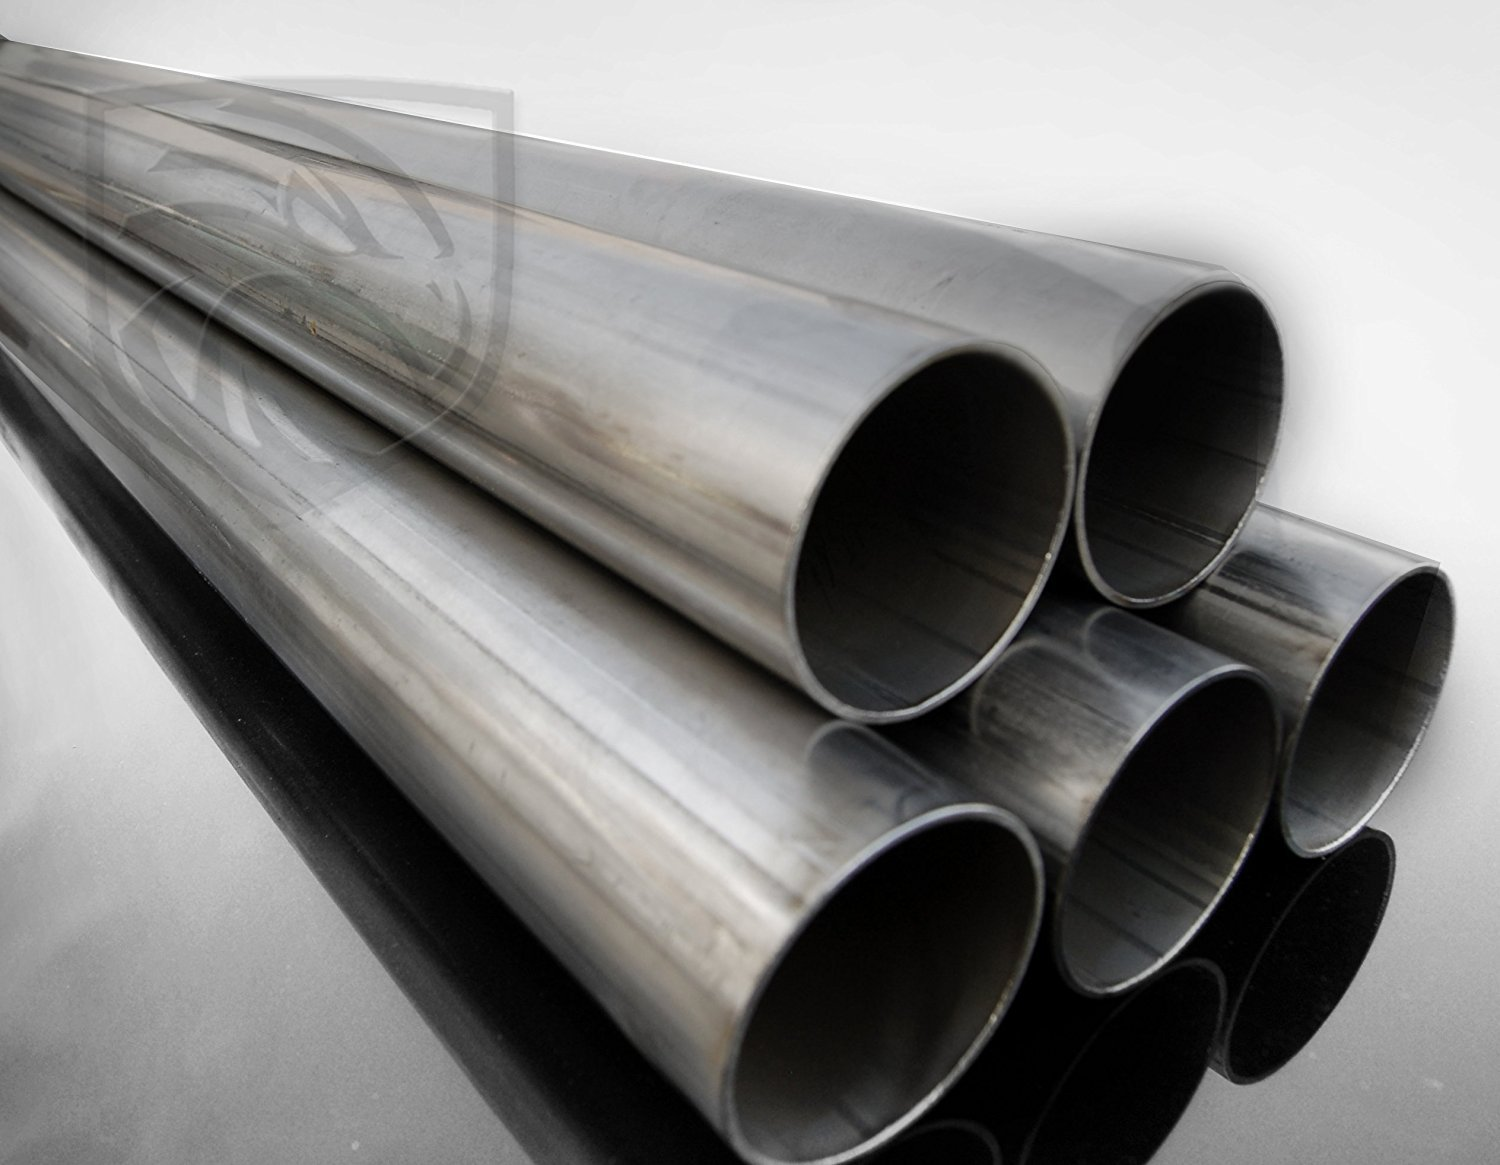 T304 Stainless Steel Round Pipe / Tube- 2.5'' OD, 16 Gauge, 5 Foot Tube #RTP-SP003-5